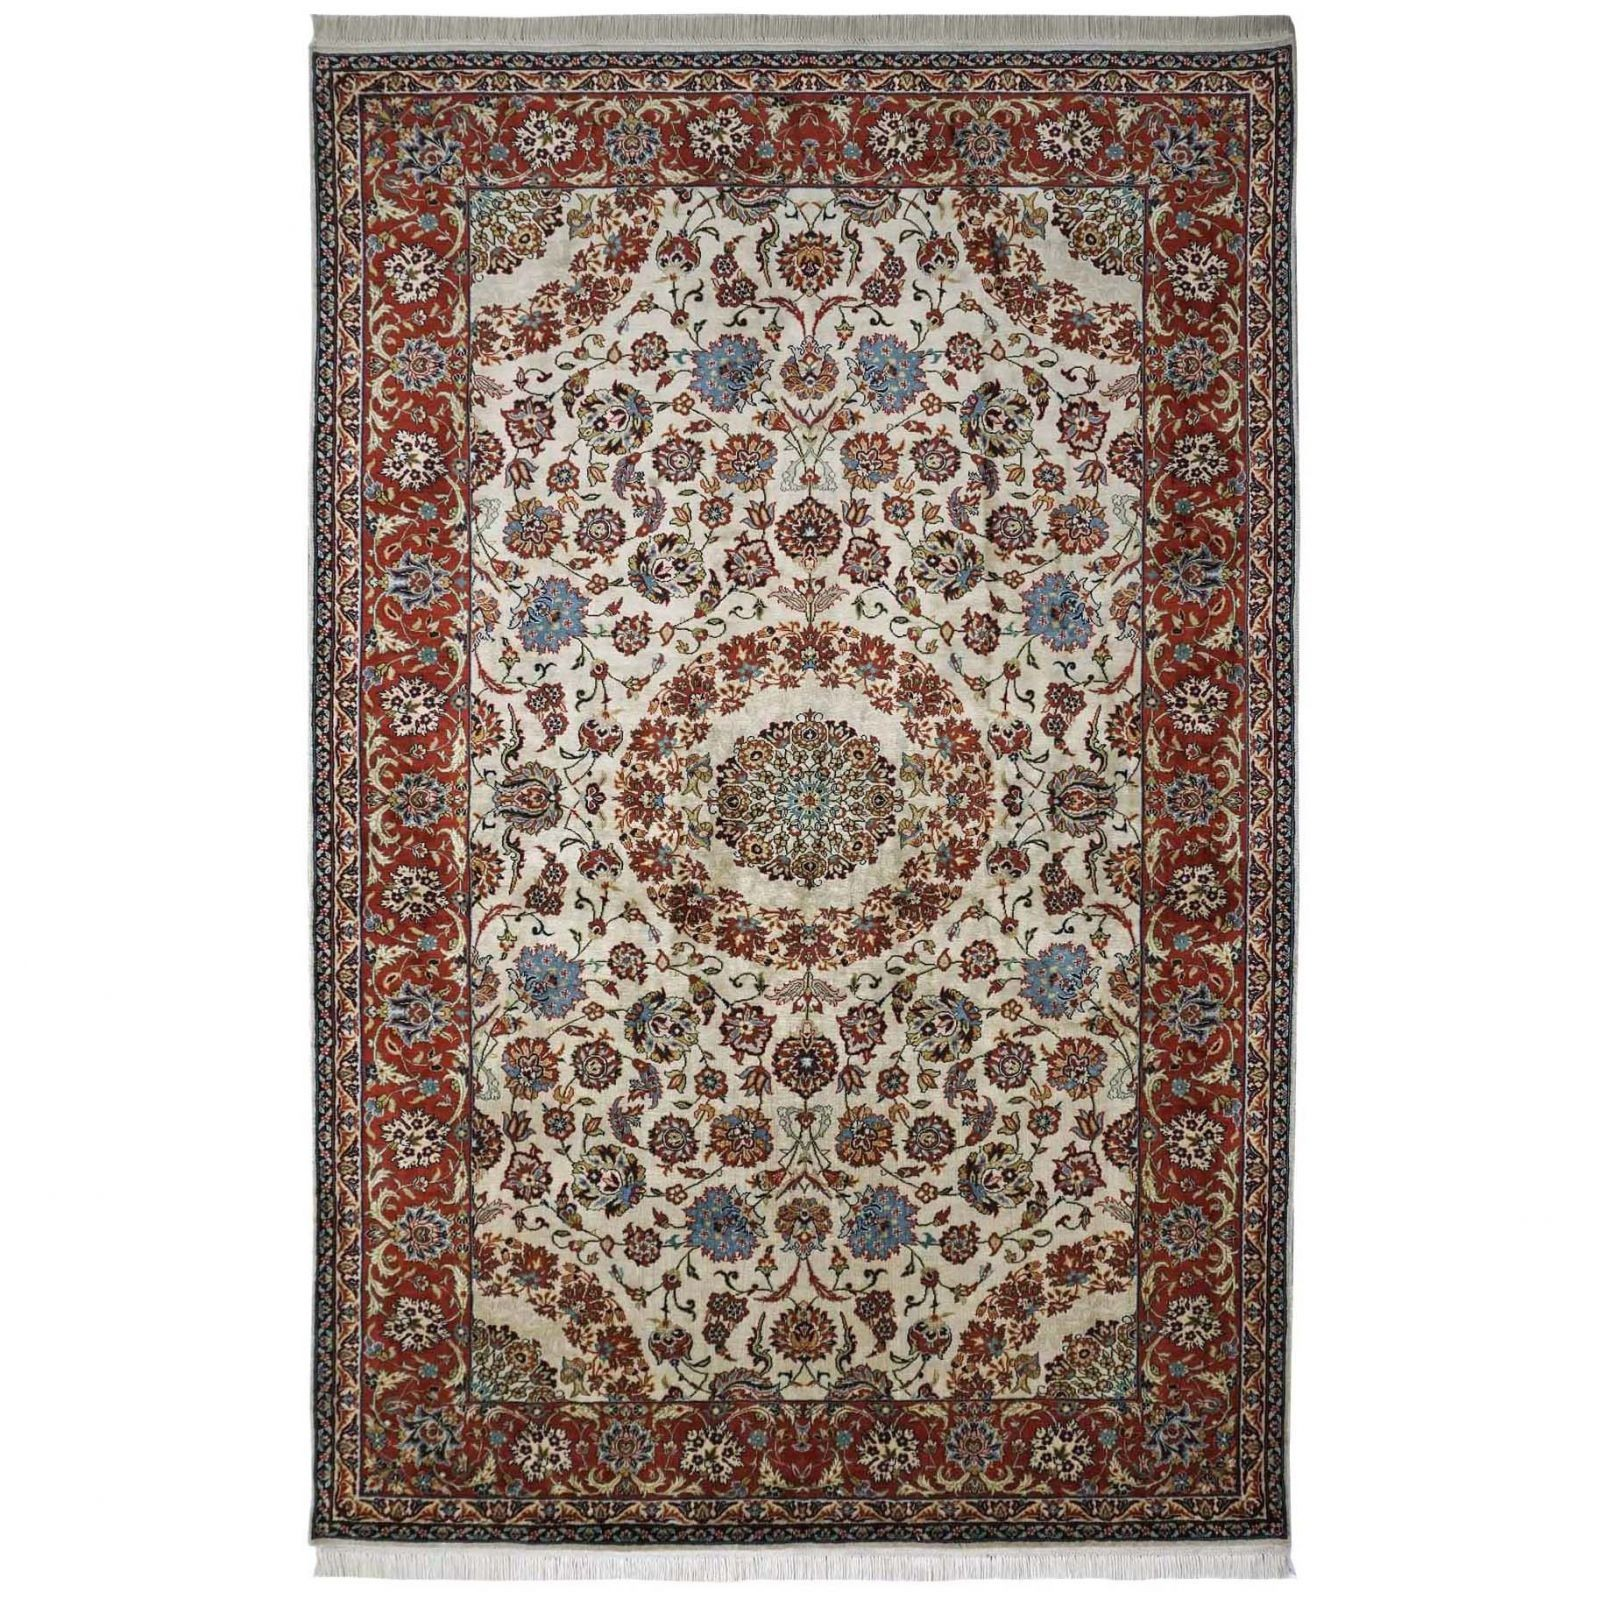 Isfahan design silk pile carpet